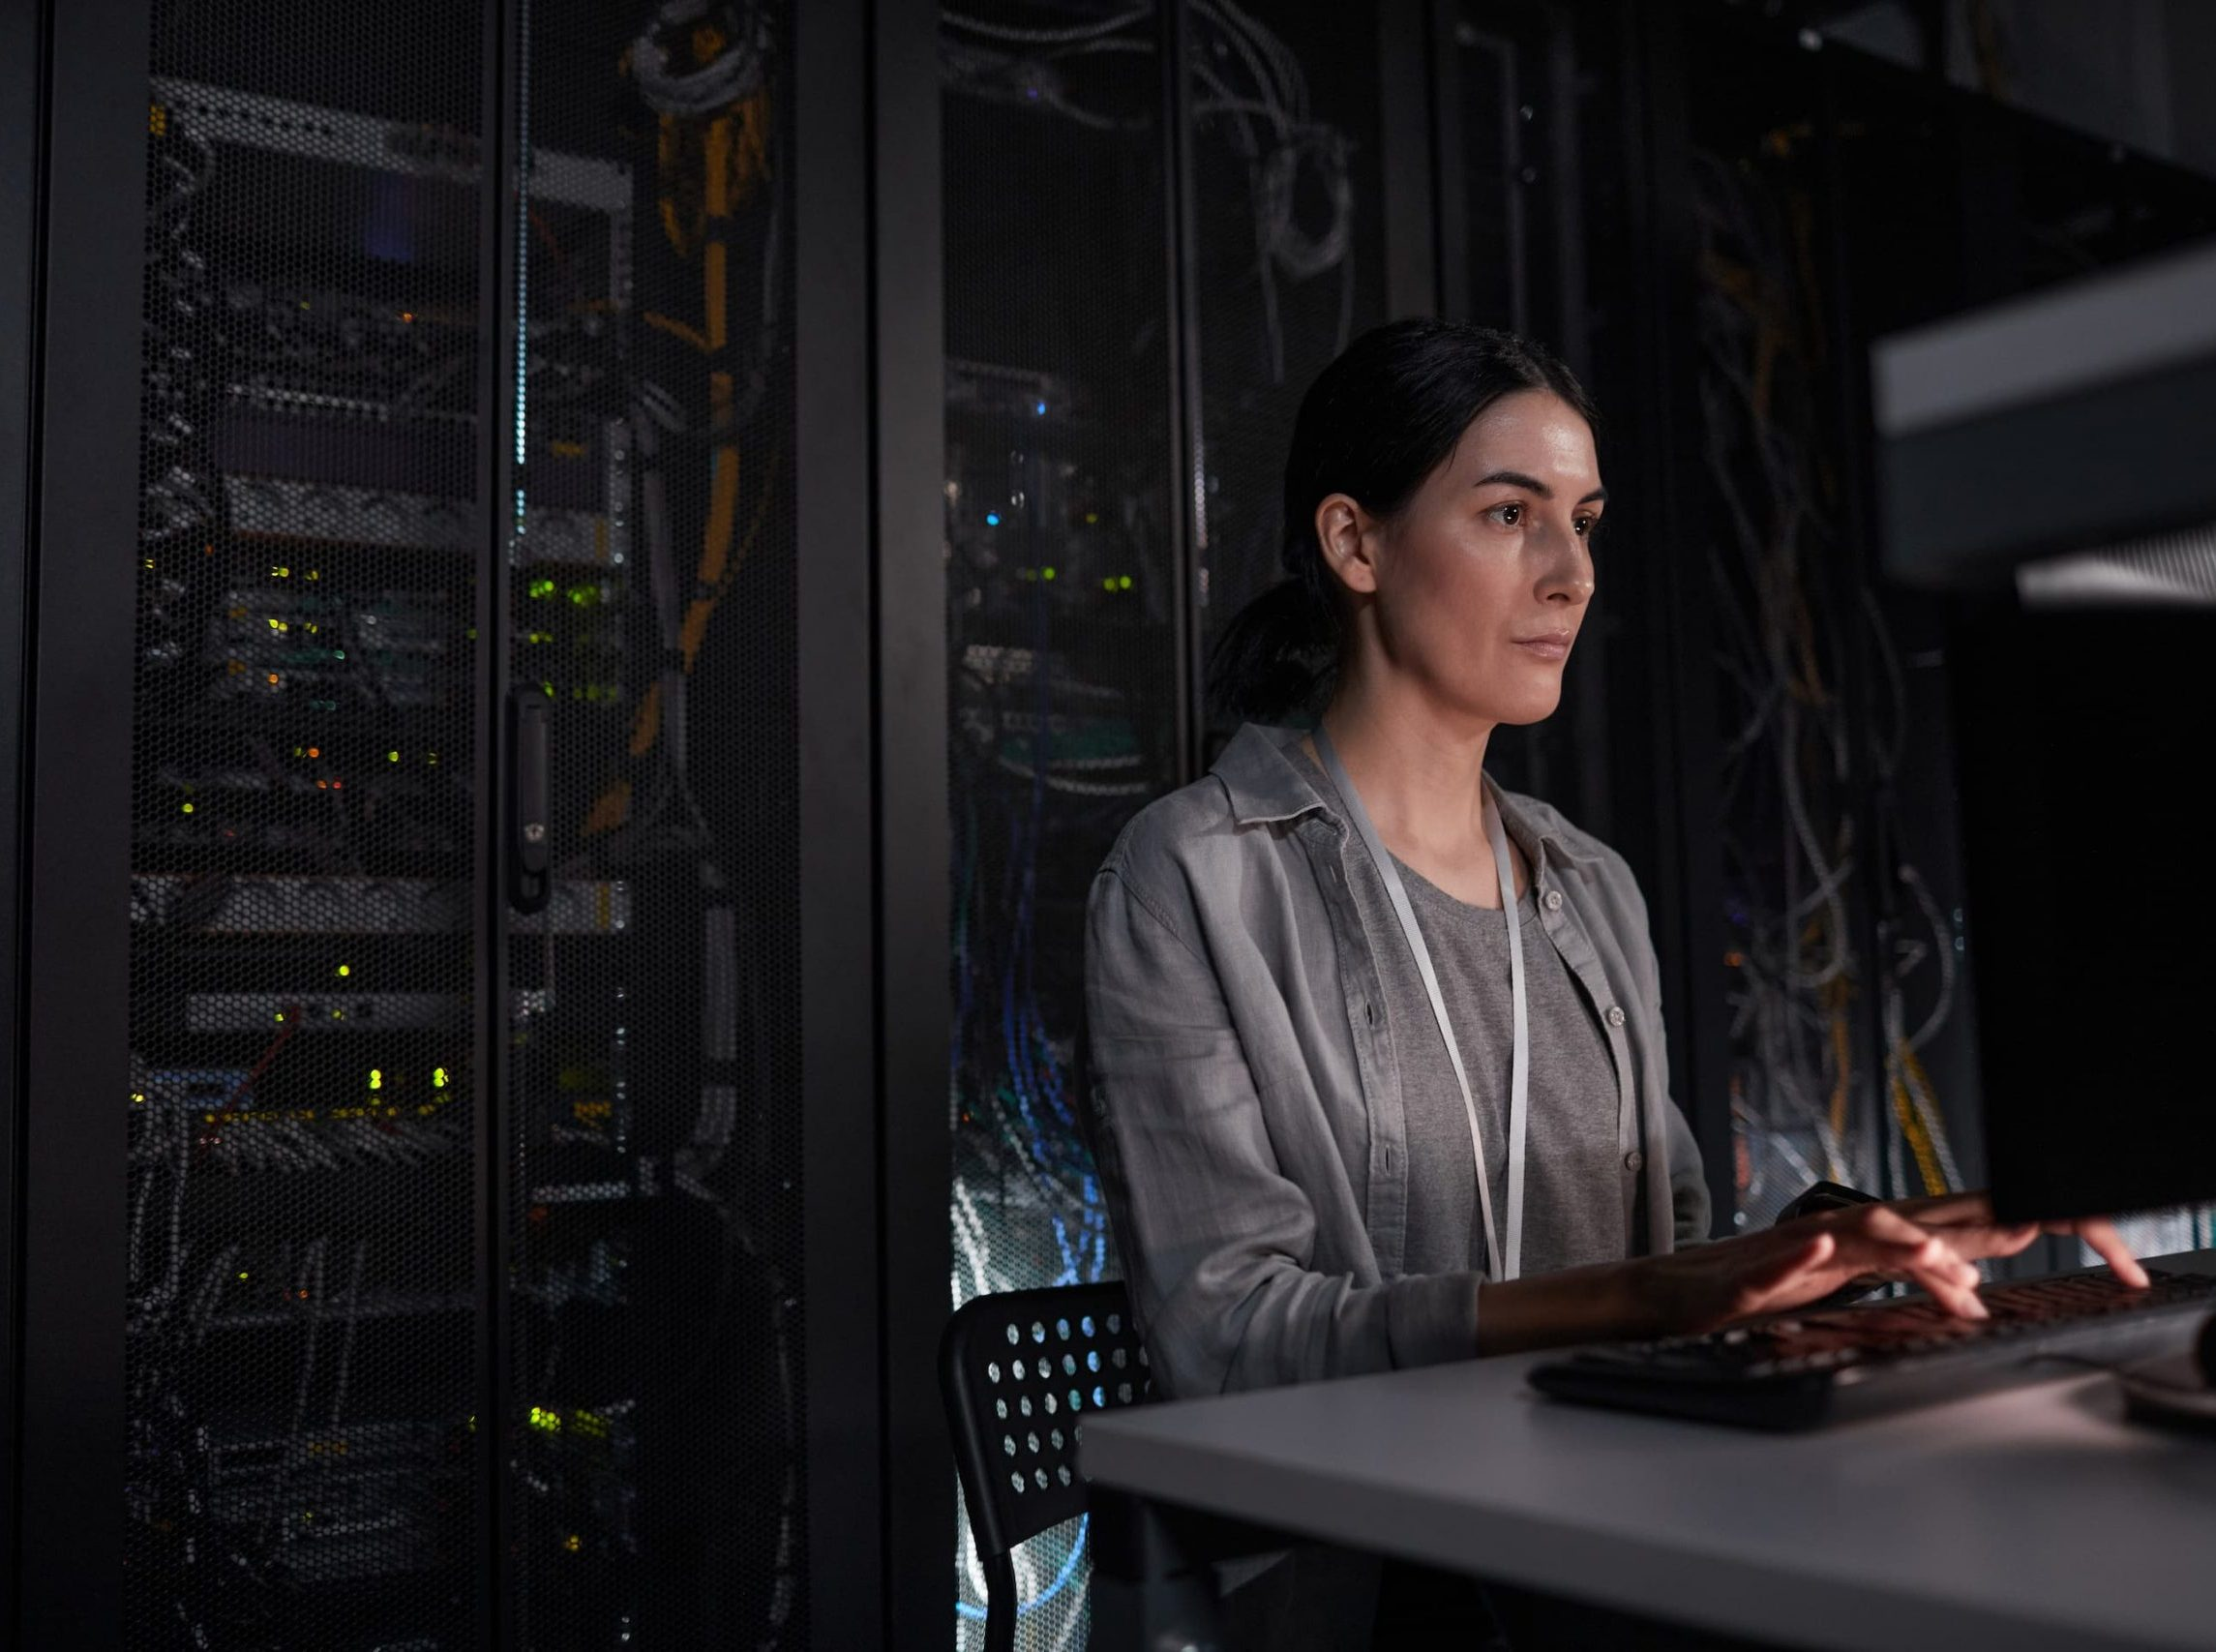 woman-using-computer-in-server-room-6YHX2NB (1)